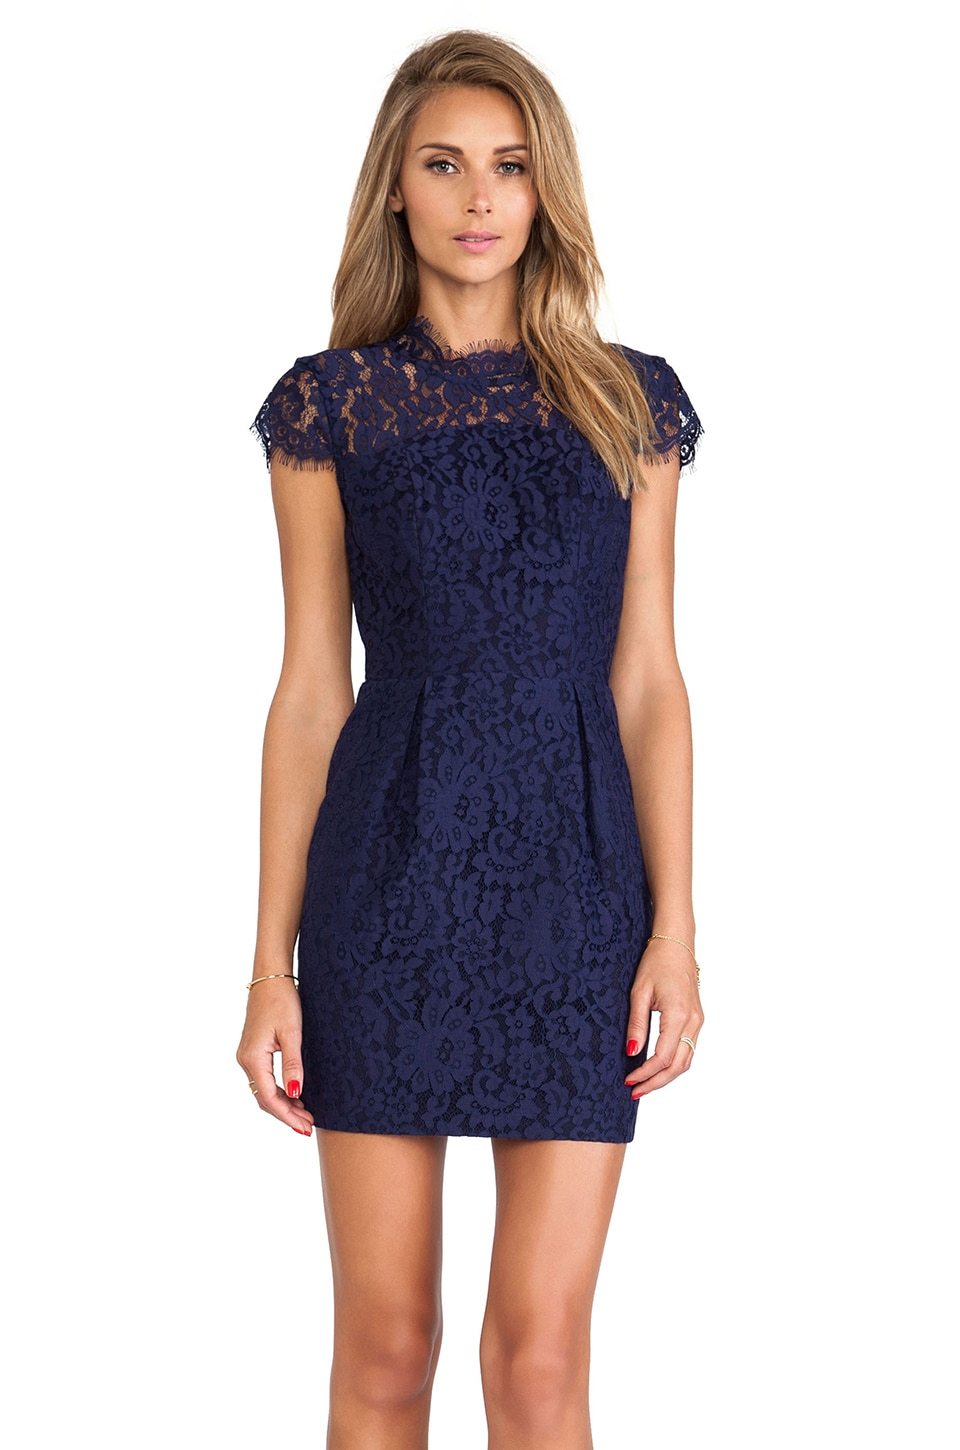 keepsake Run the World Dress in Eclipse Lace